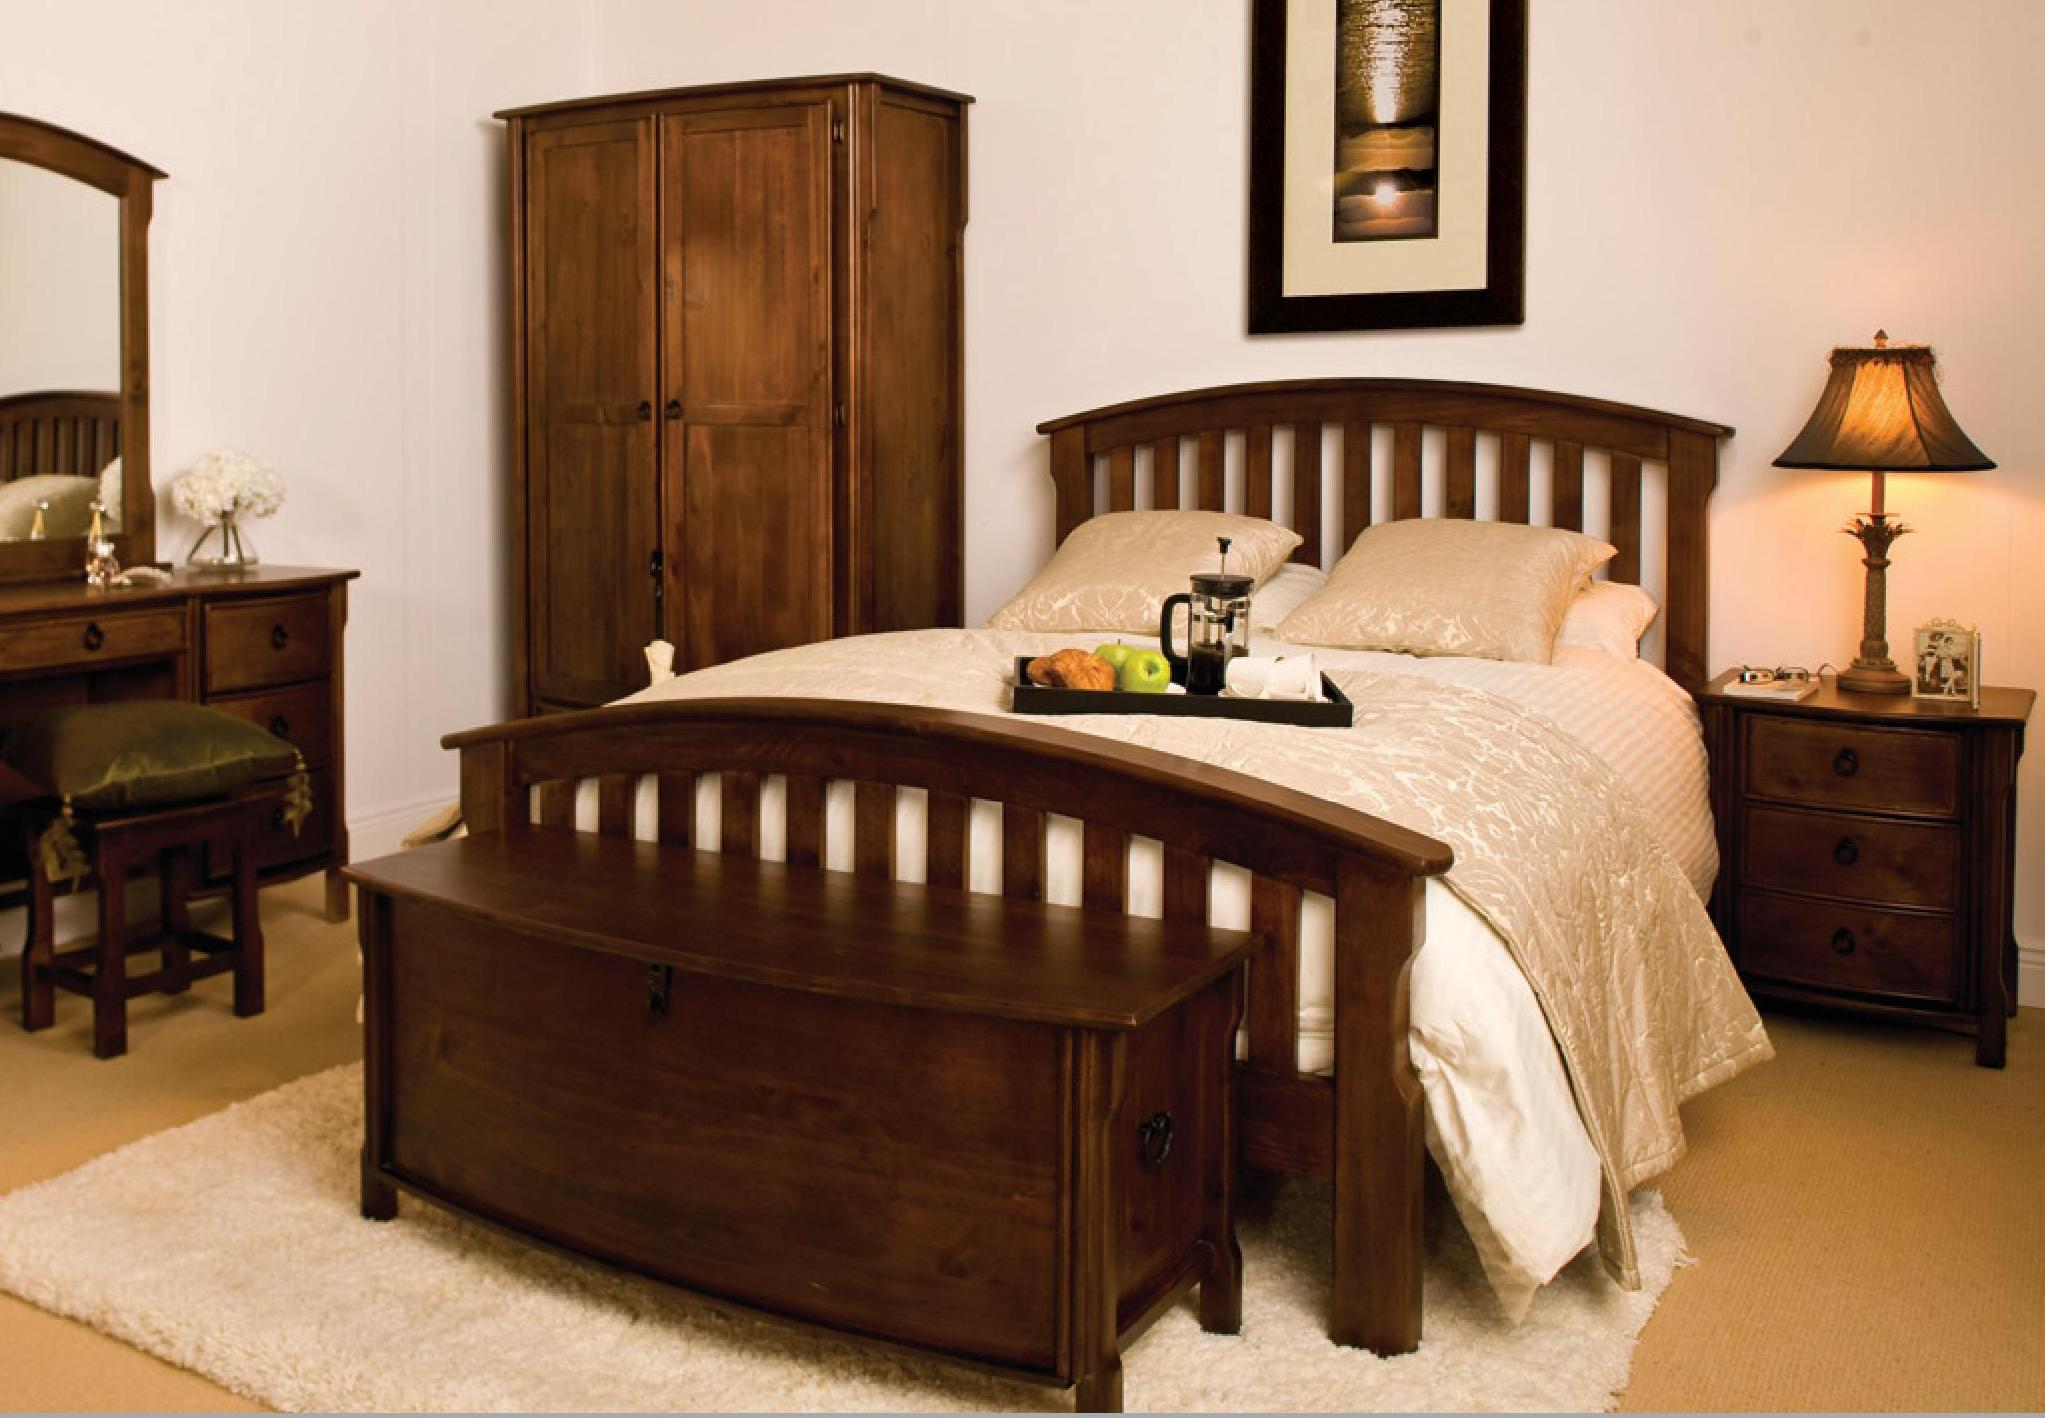 Seville 5' Bedroom Set